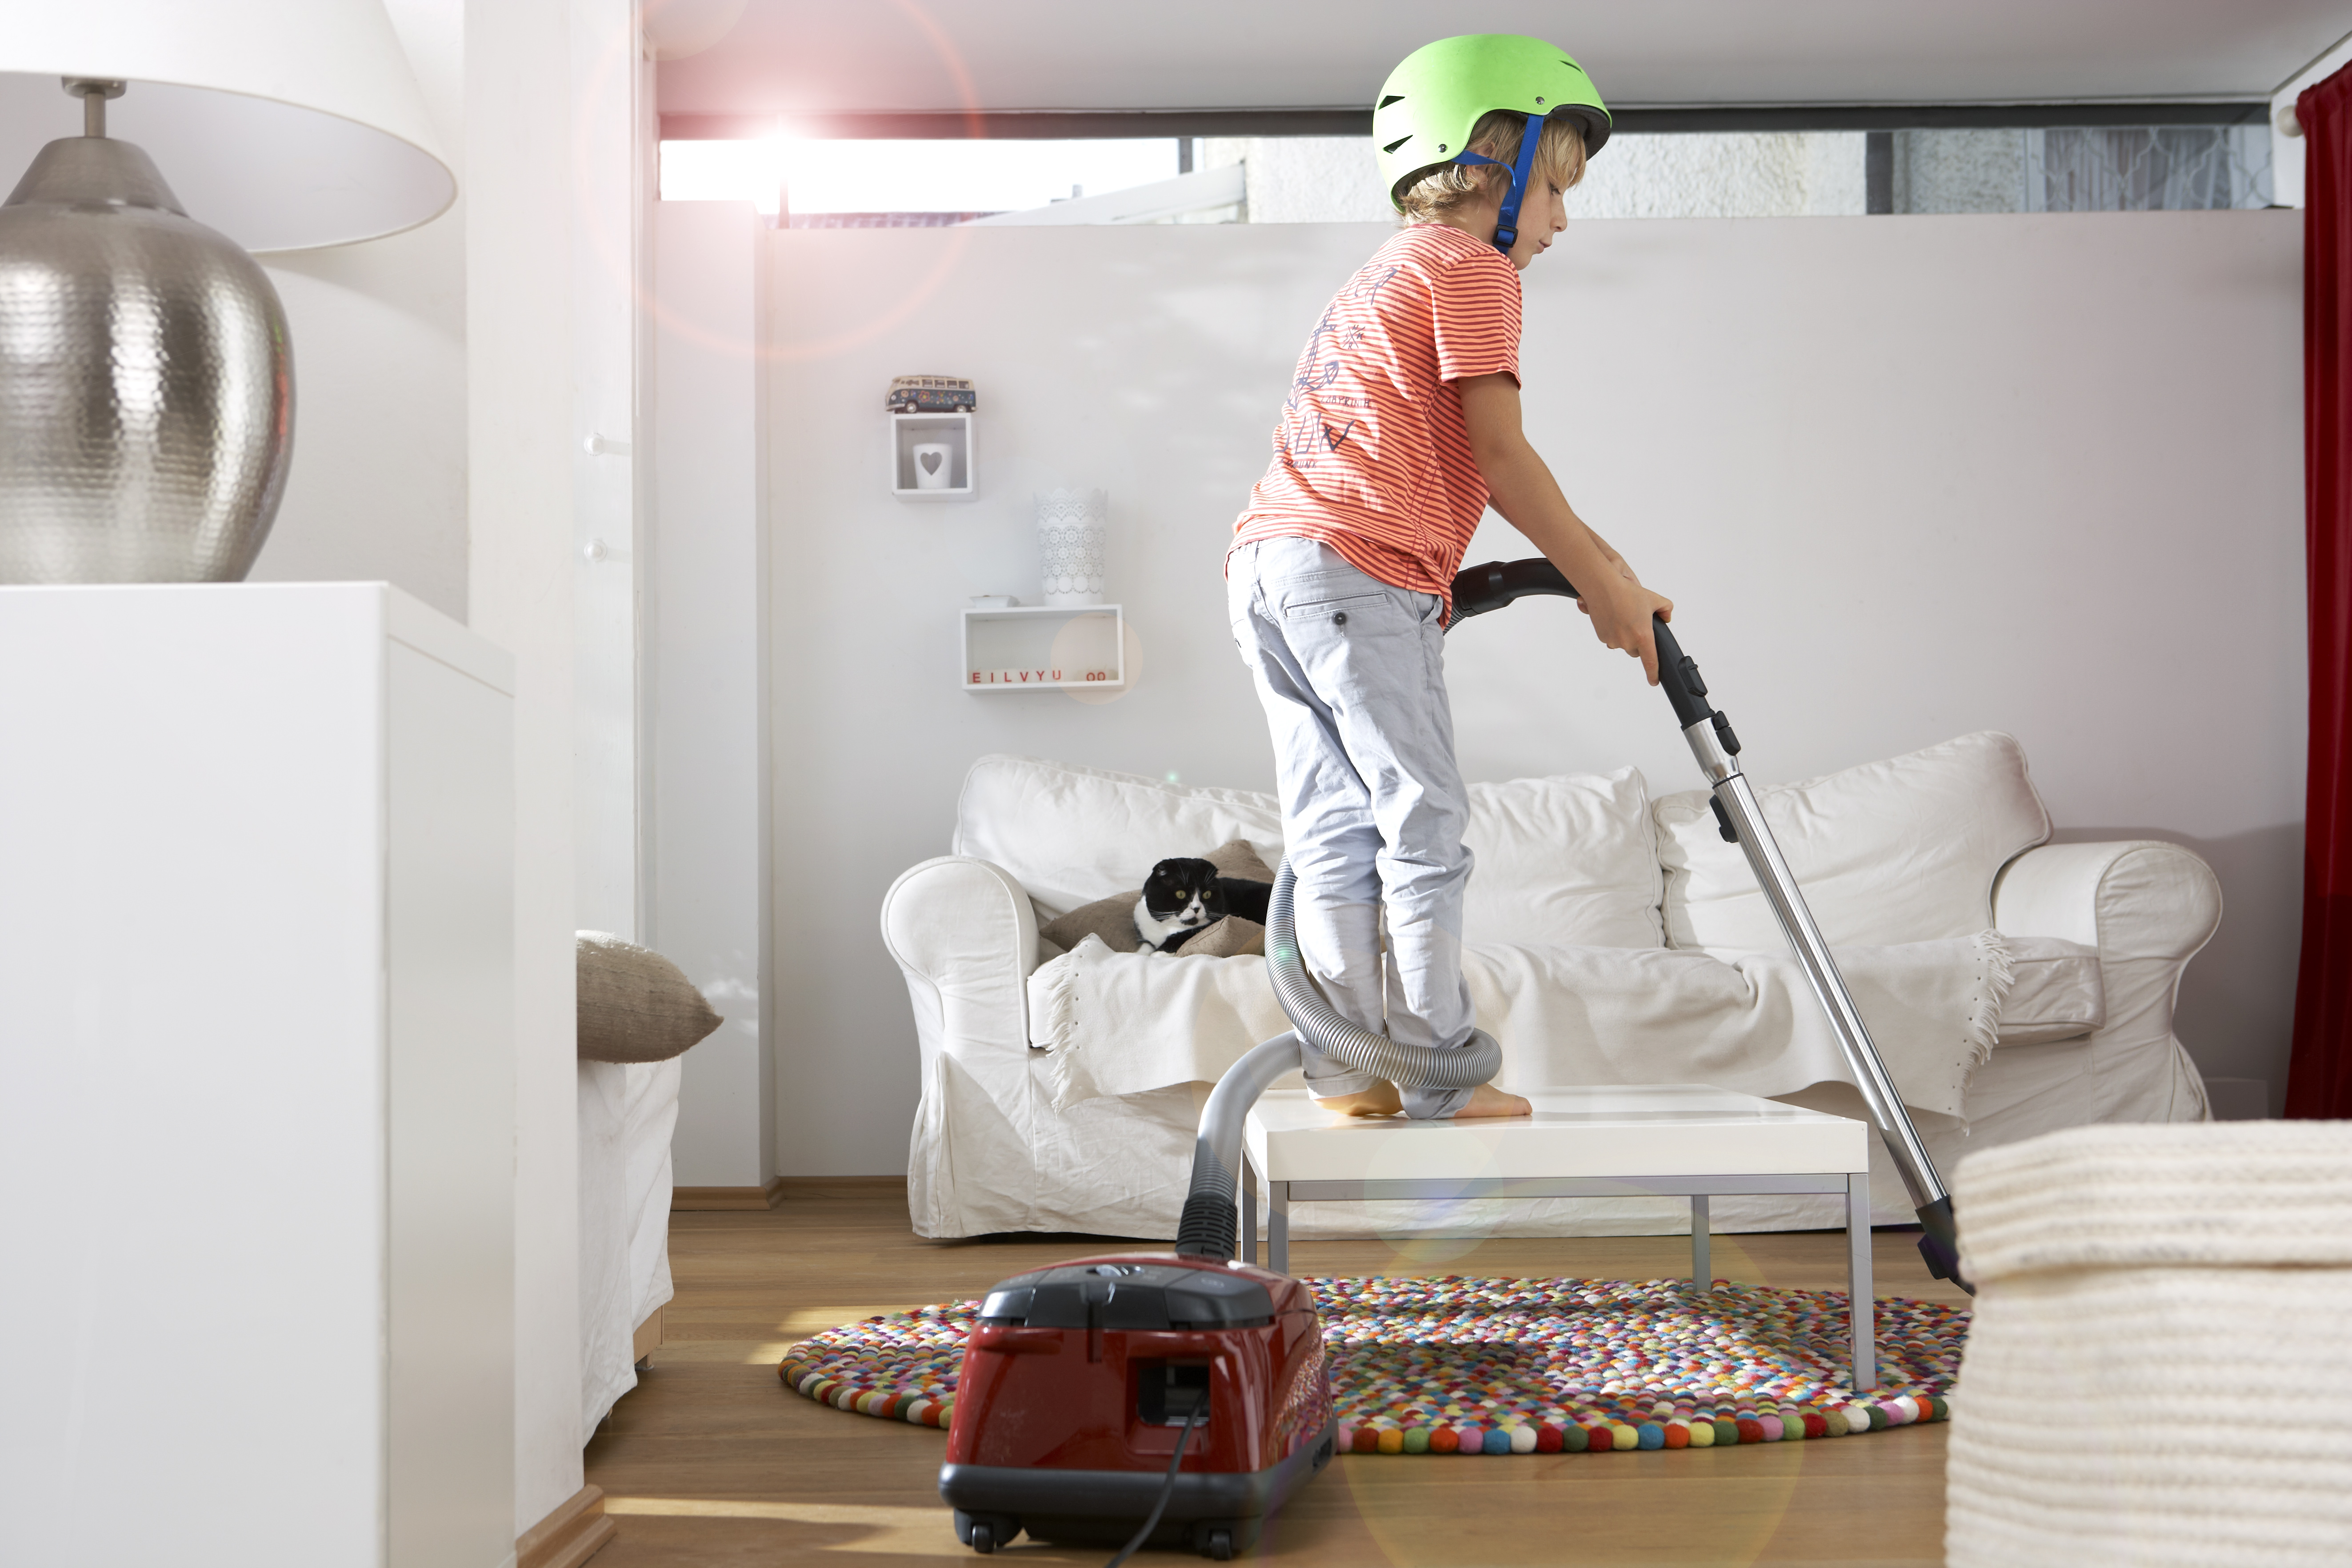 Let them help around the house